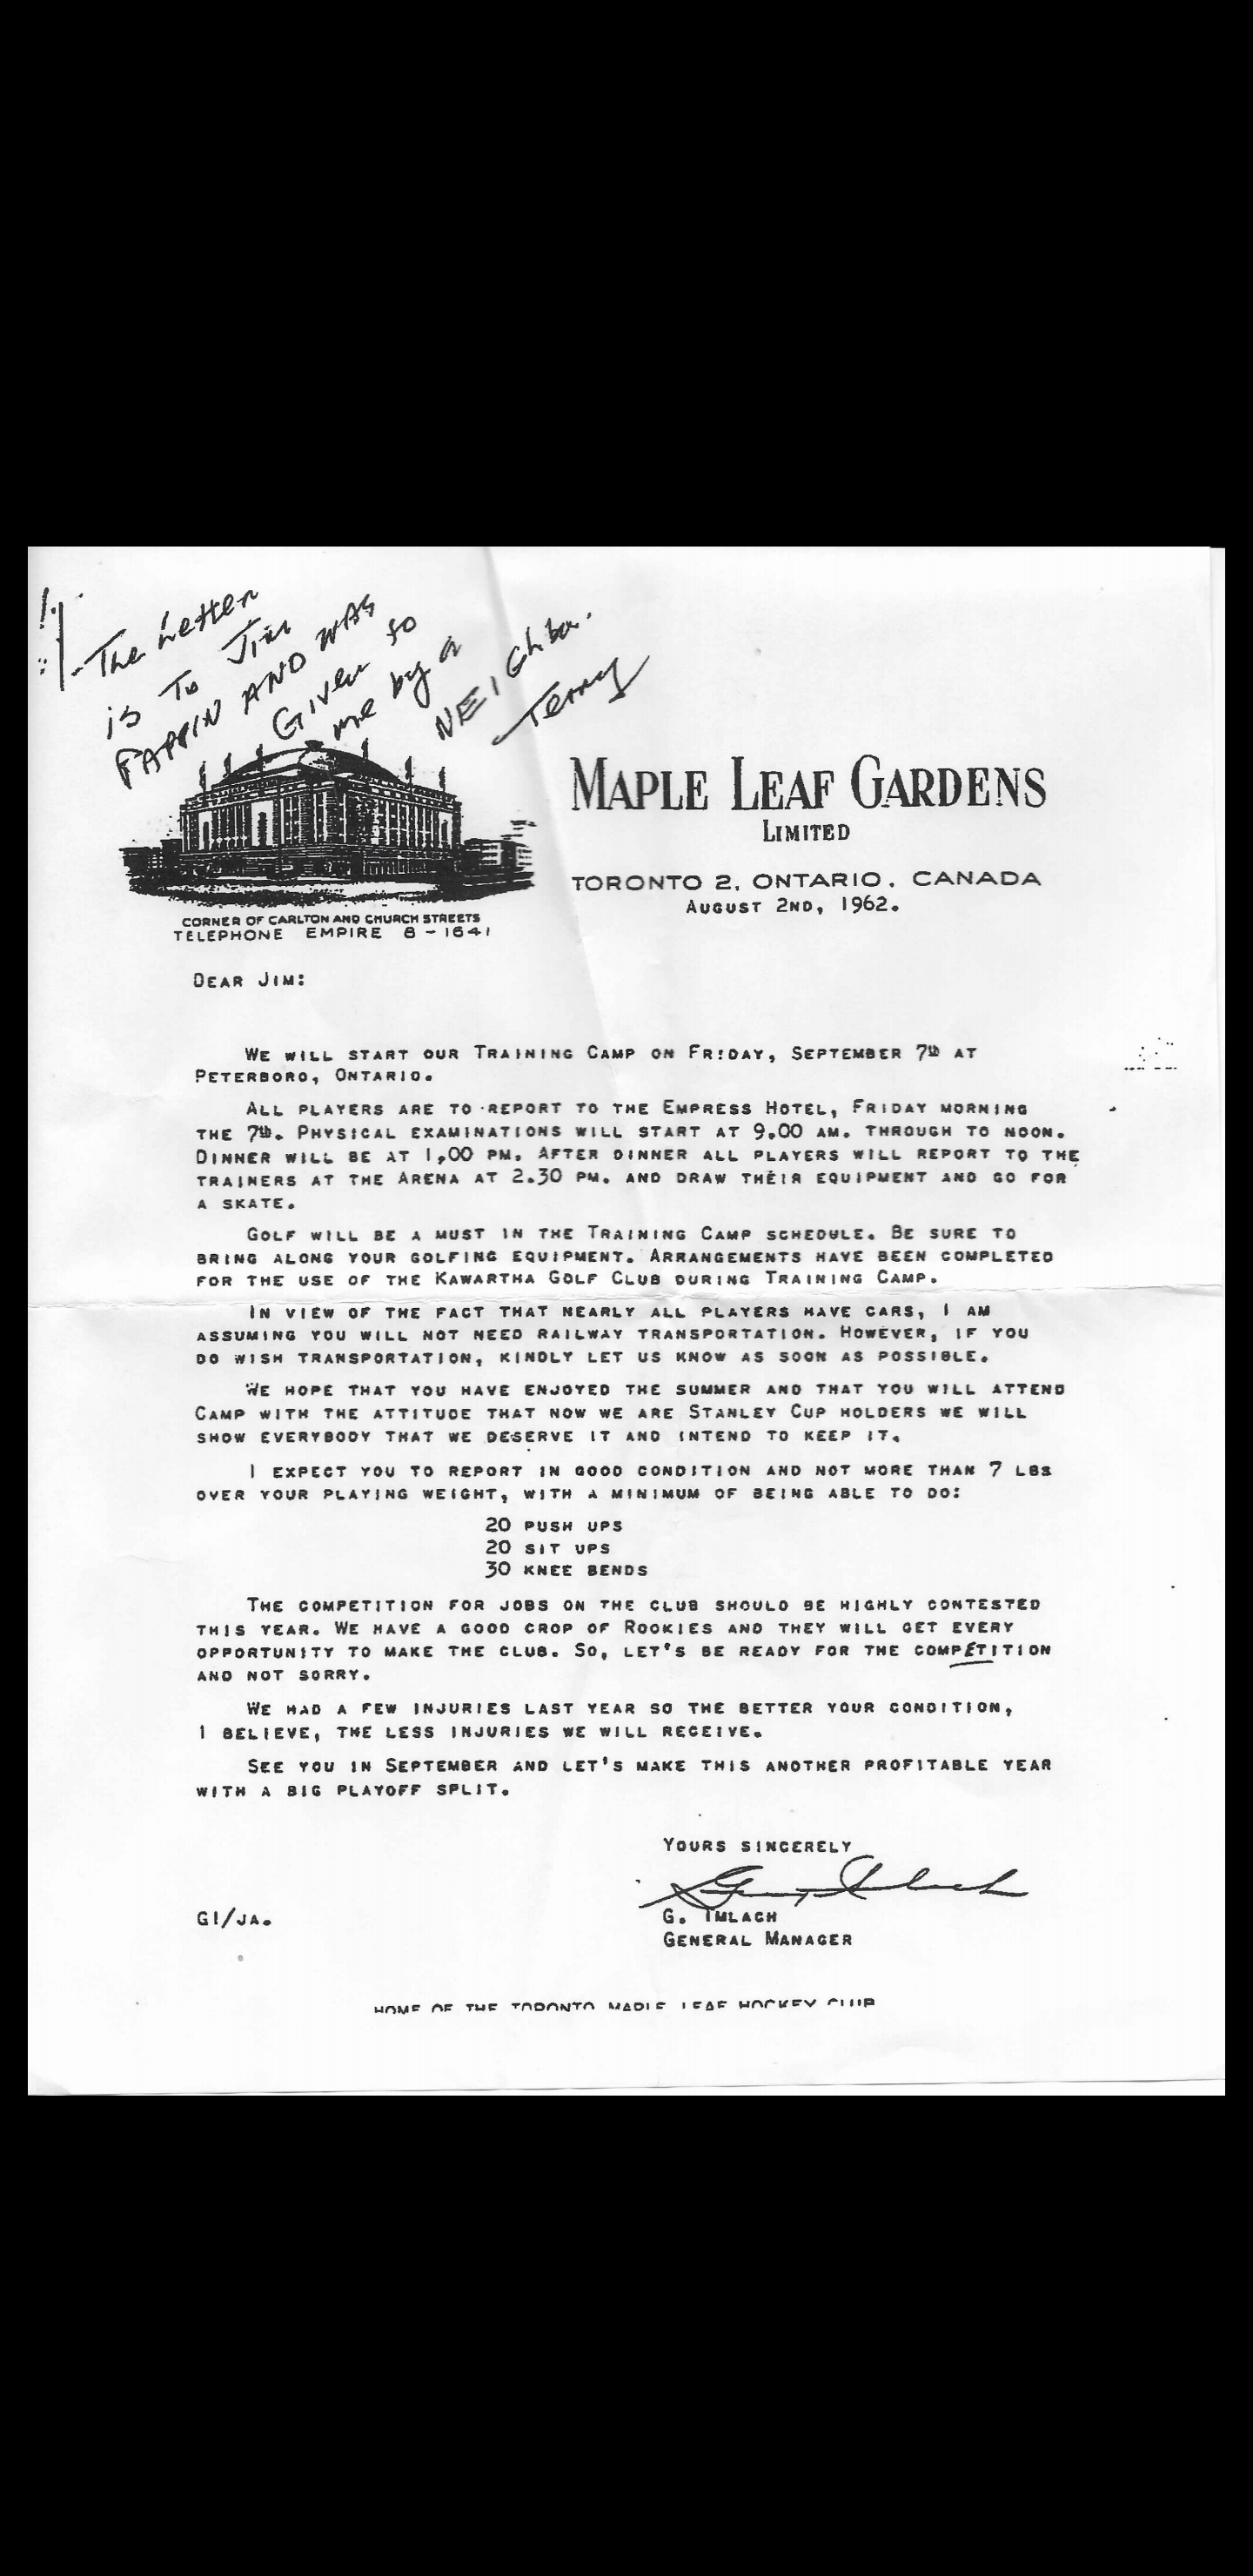 1962 letter from Punch Imlach to his players